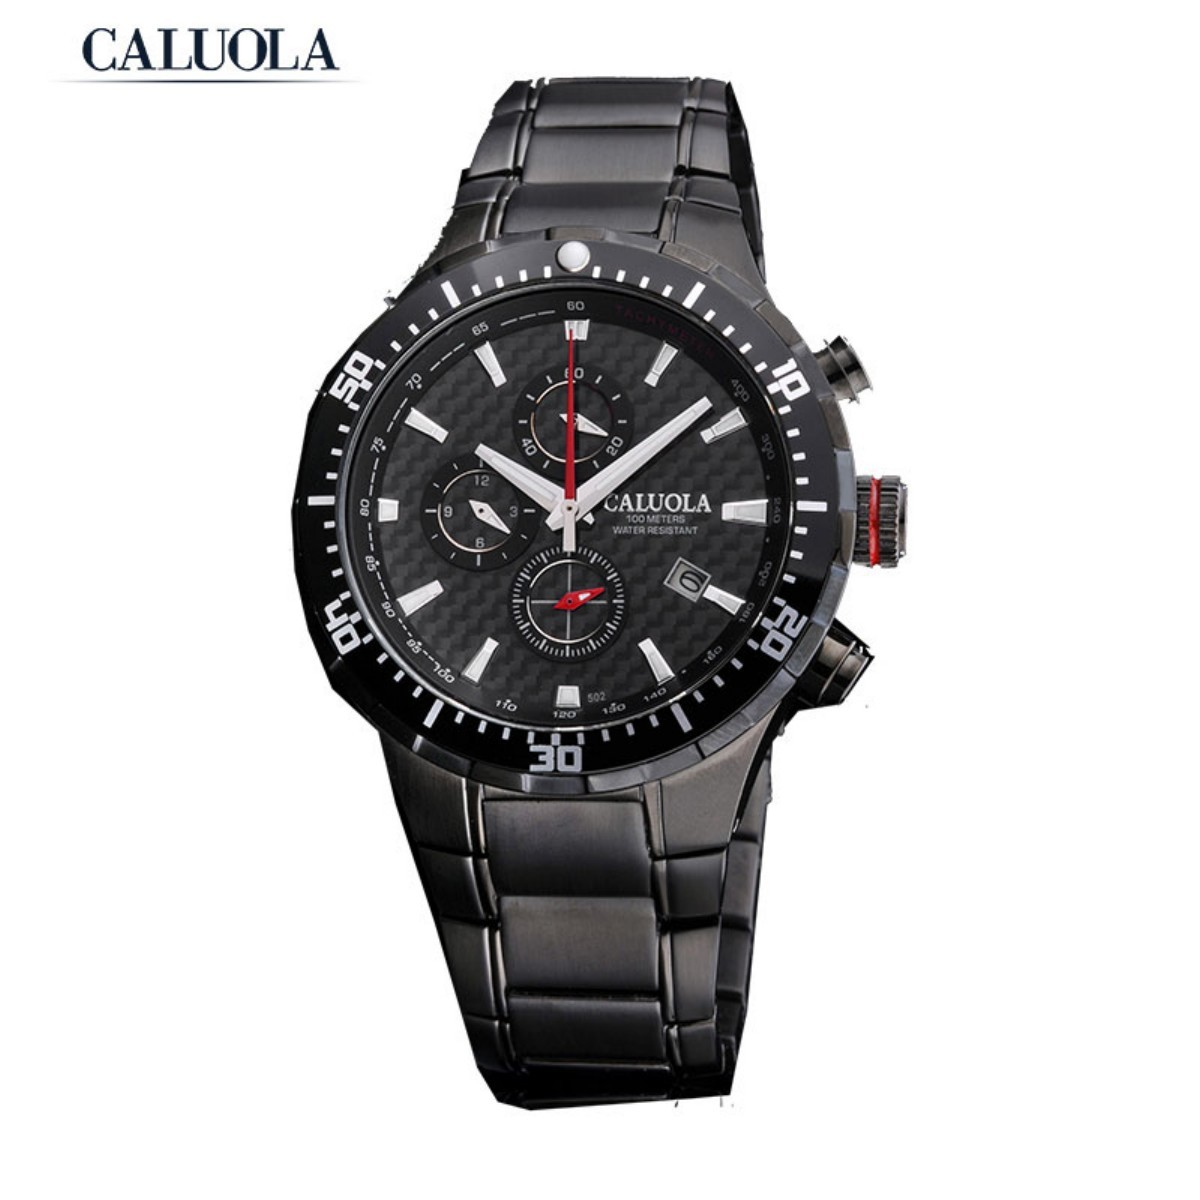 Caluola Men Watch 42.5mm PVD CA1041